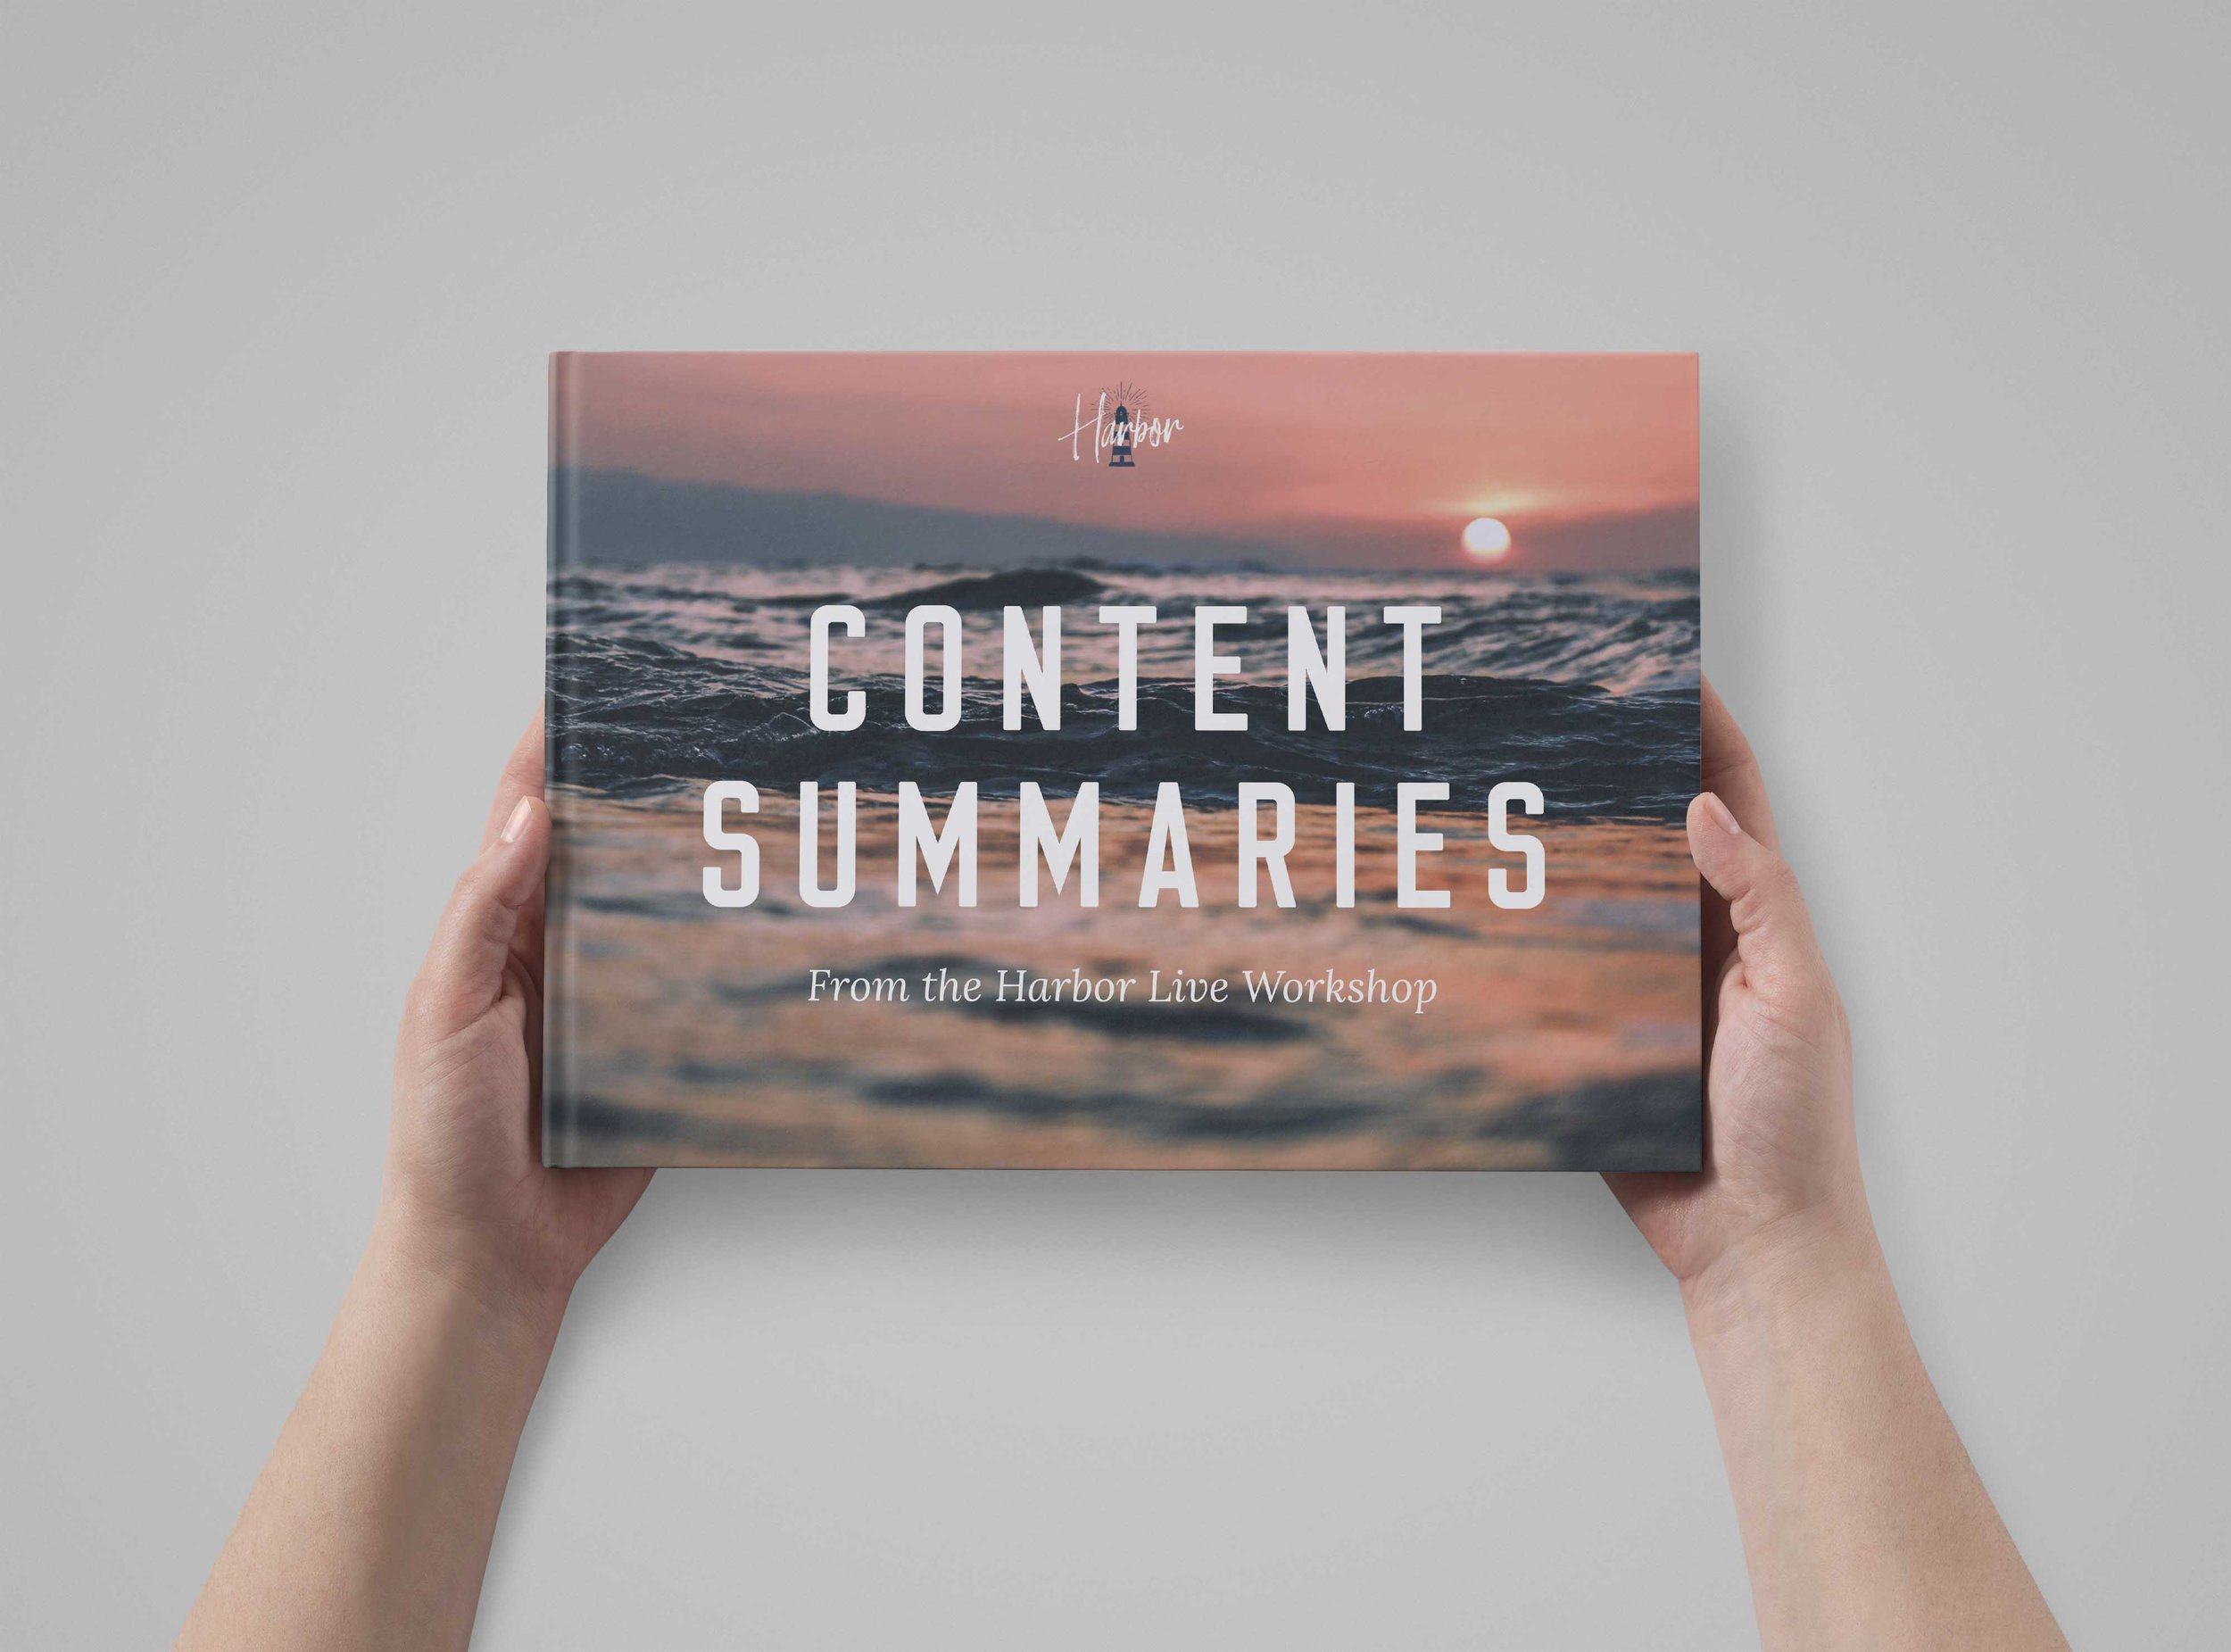 content summary book cover.jpg